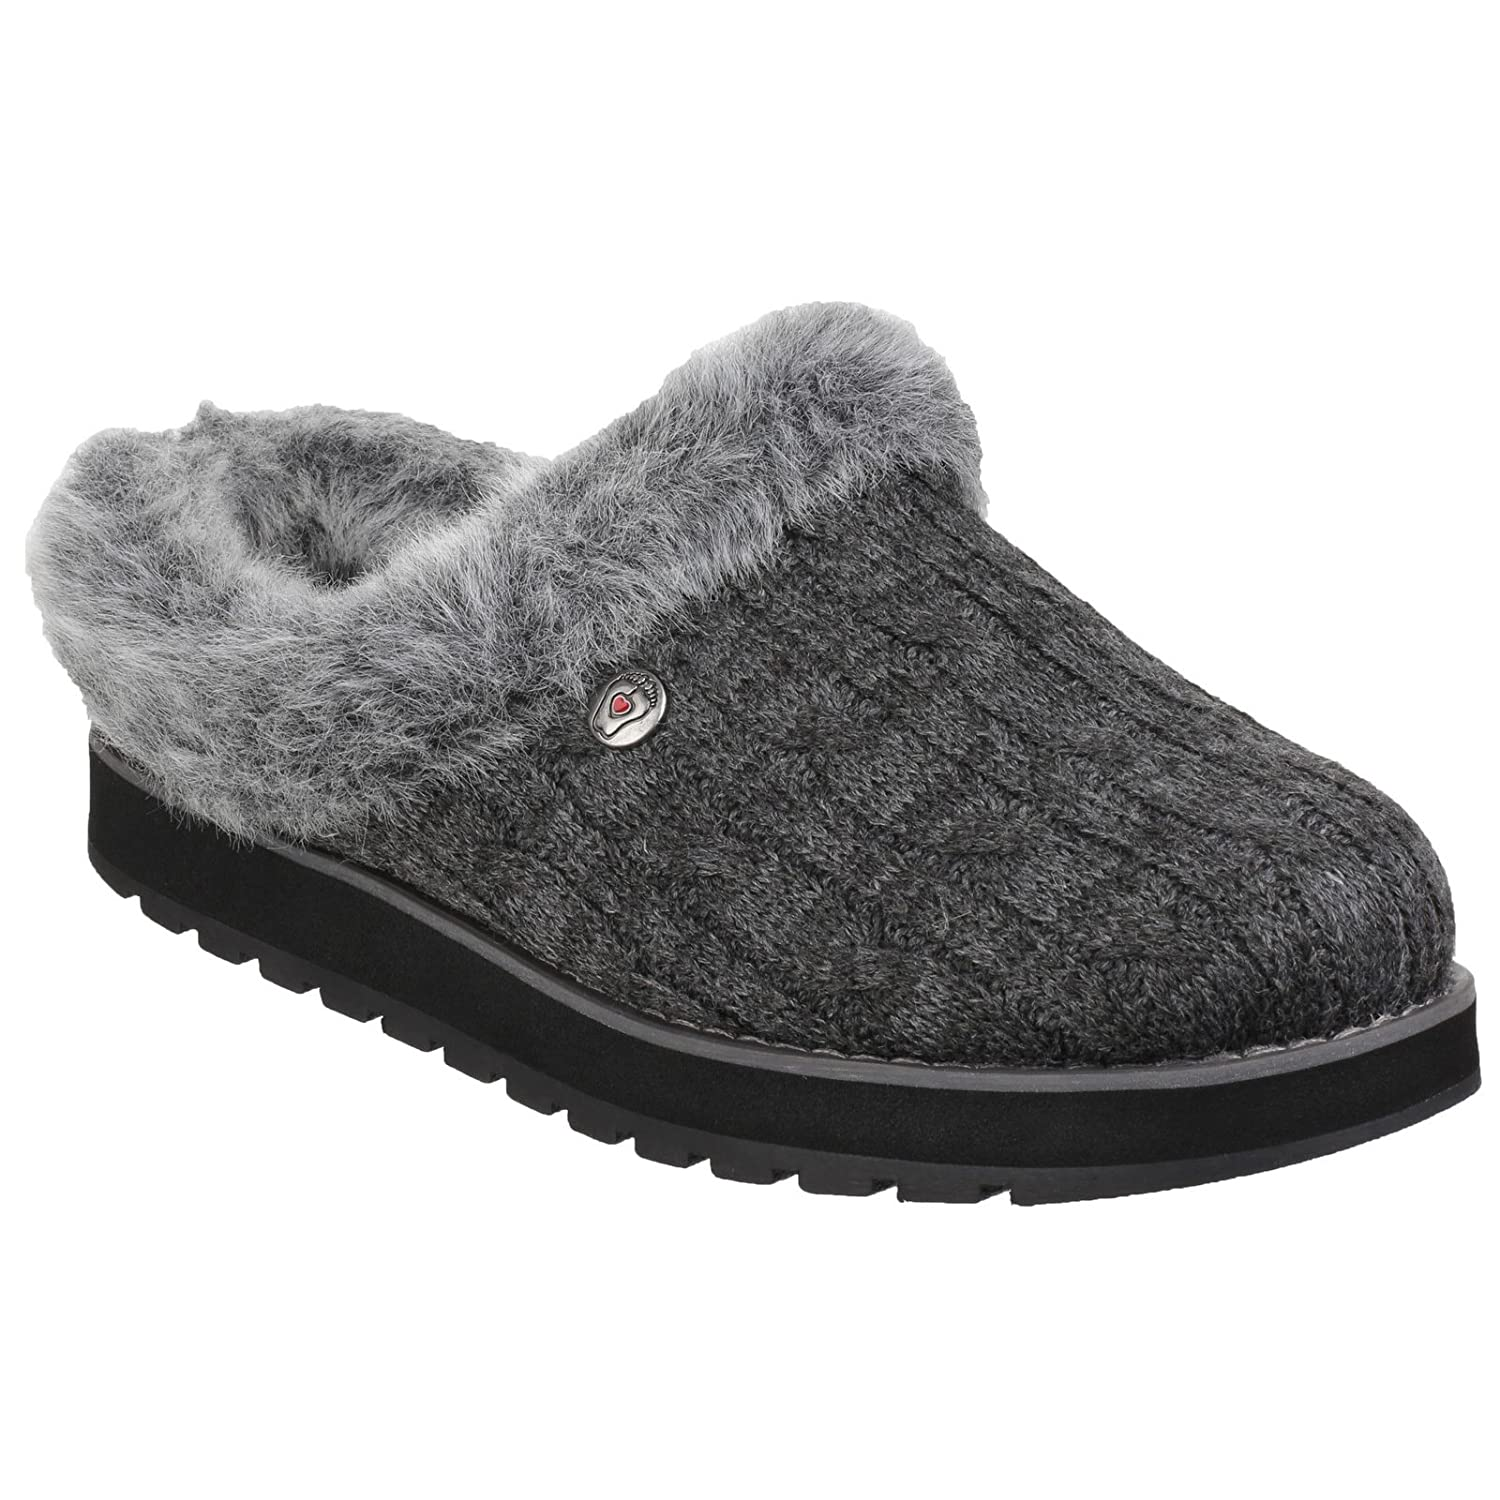 Amazon.com: Skechers Womens/Ladies Keepsakes Ice Angel Slip On Mule Slippers (6 US, Chocolate): Clothing